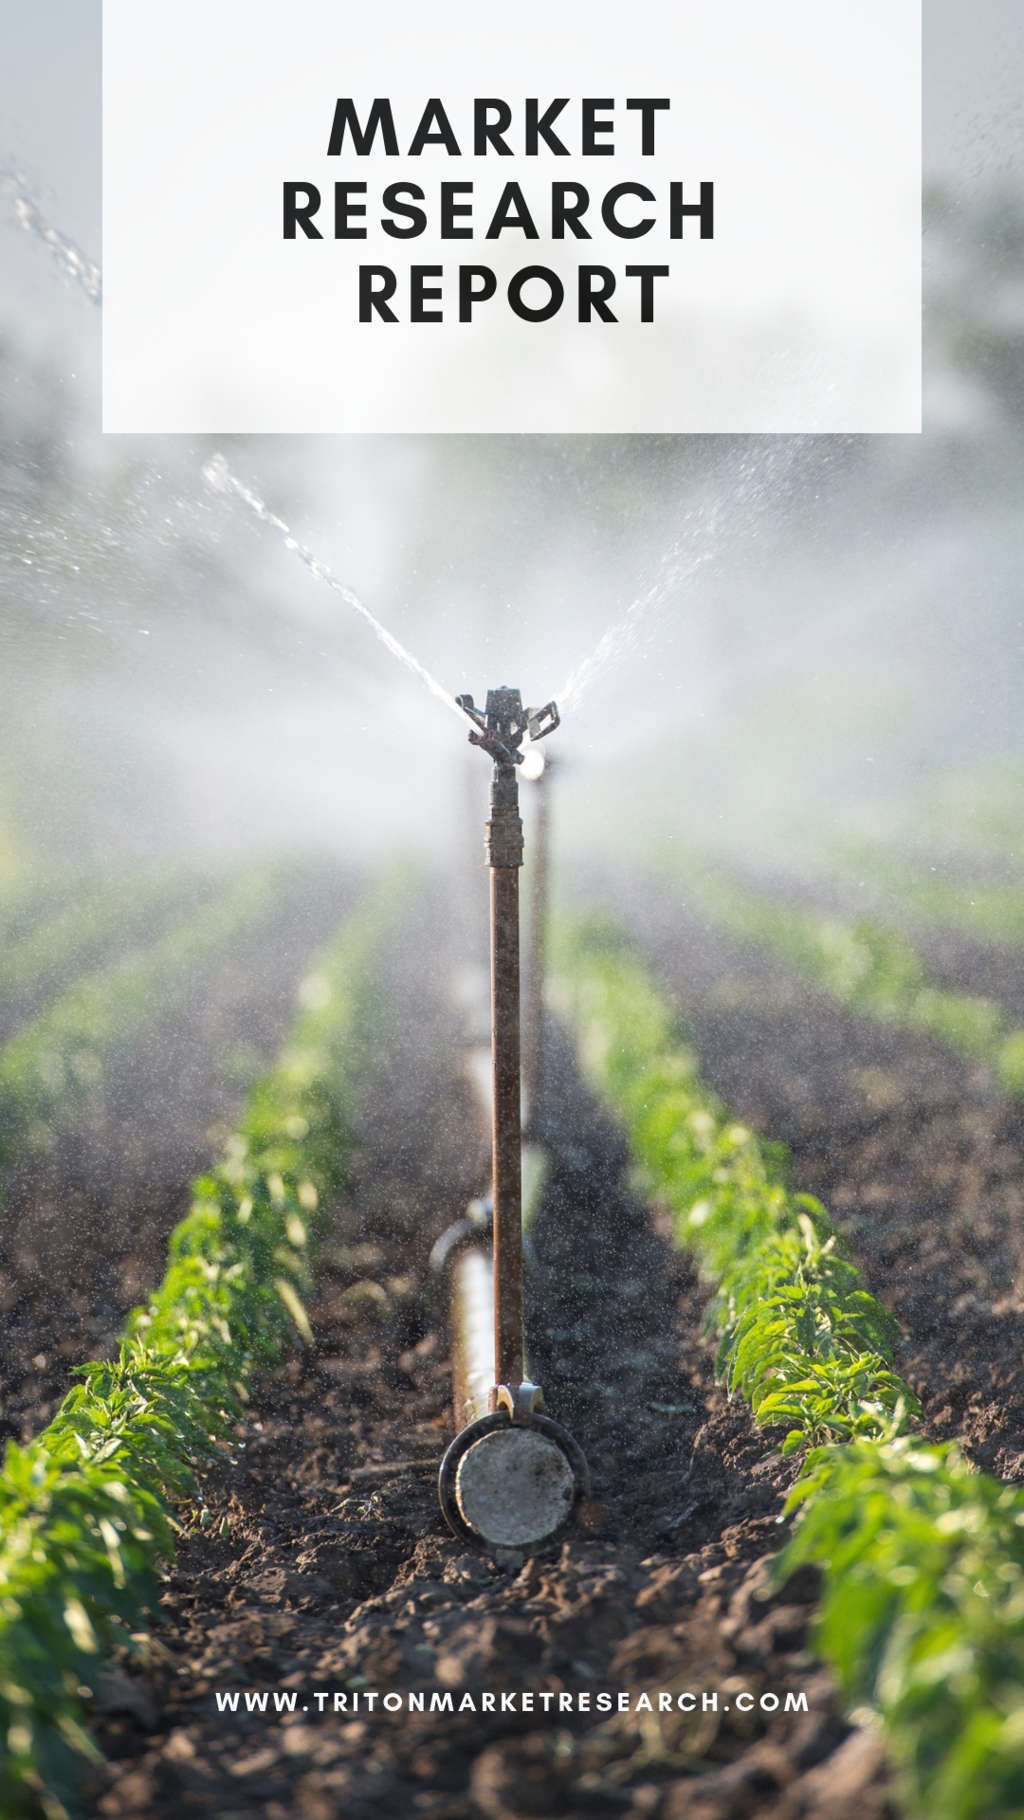 ASIA-PACIFIC MICRO IRRIGATION SYSTEMS MARKET 2021-2028